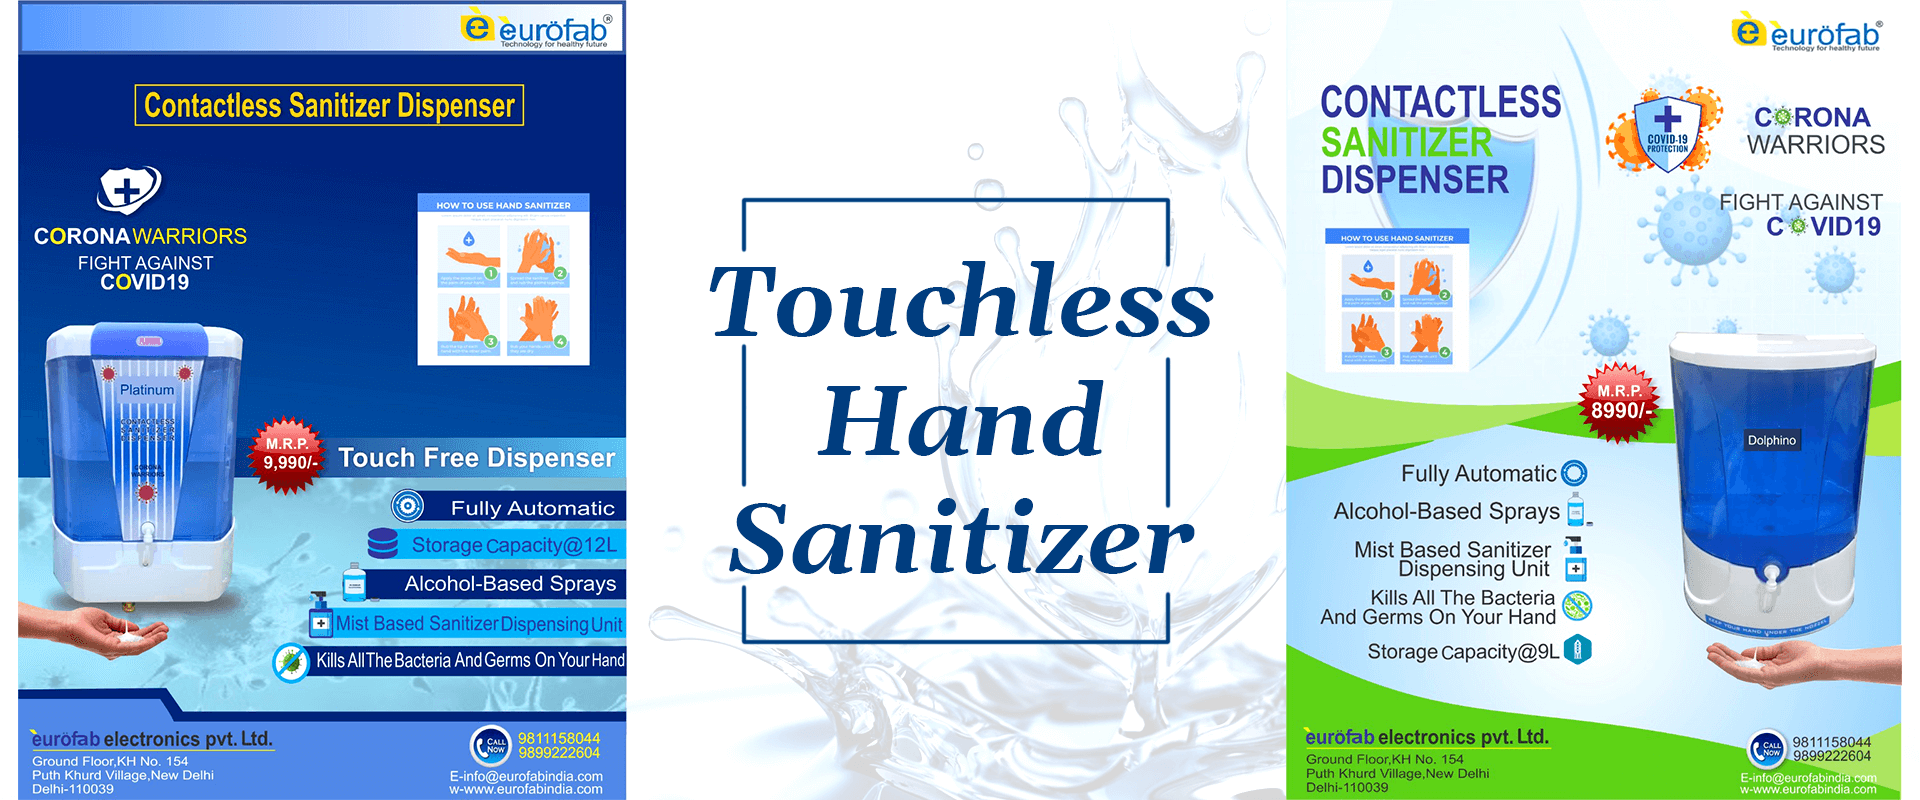 Touchless Hand Sanitizer